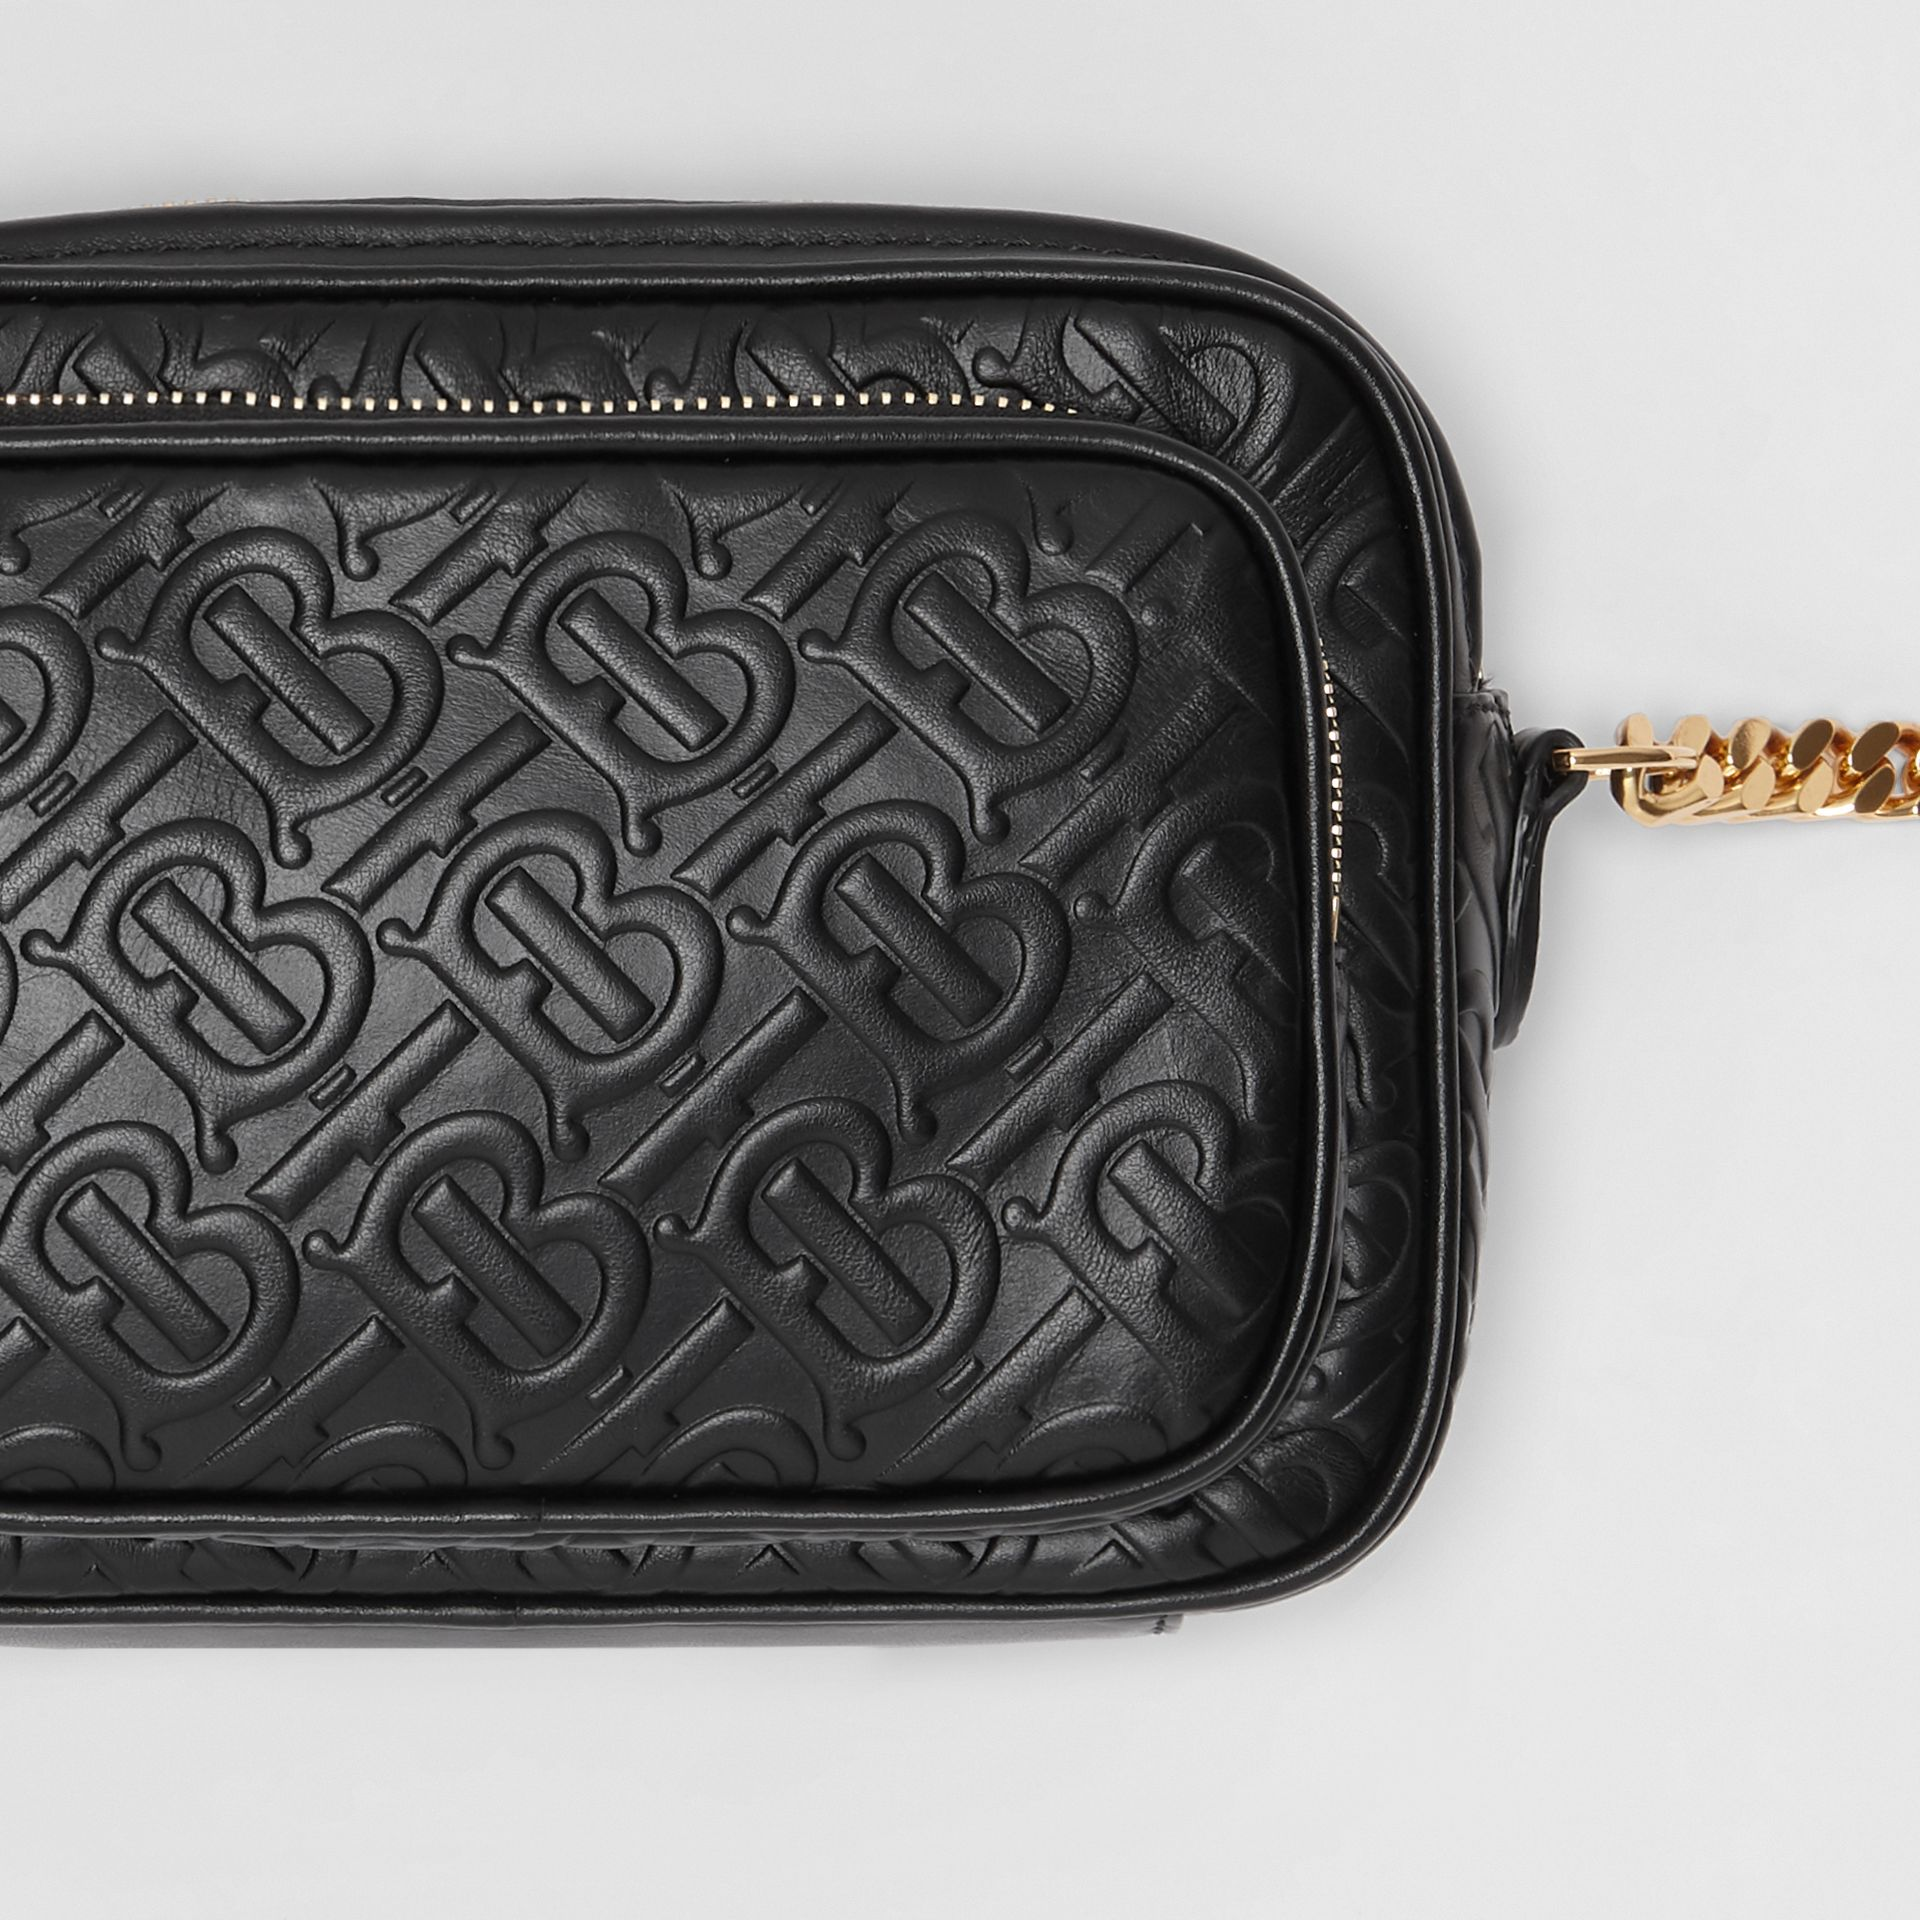 Monogram Leather Camera Bag in Black - Women | Burberry United States - gallery image 1